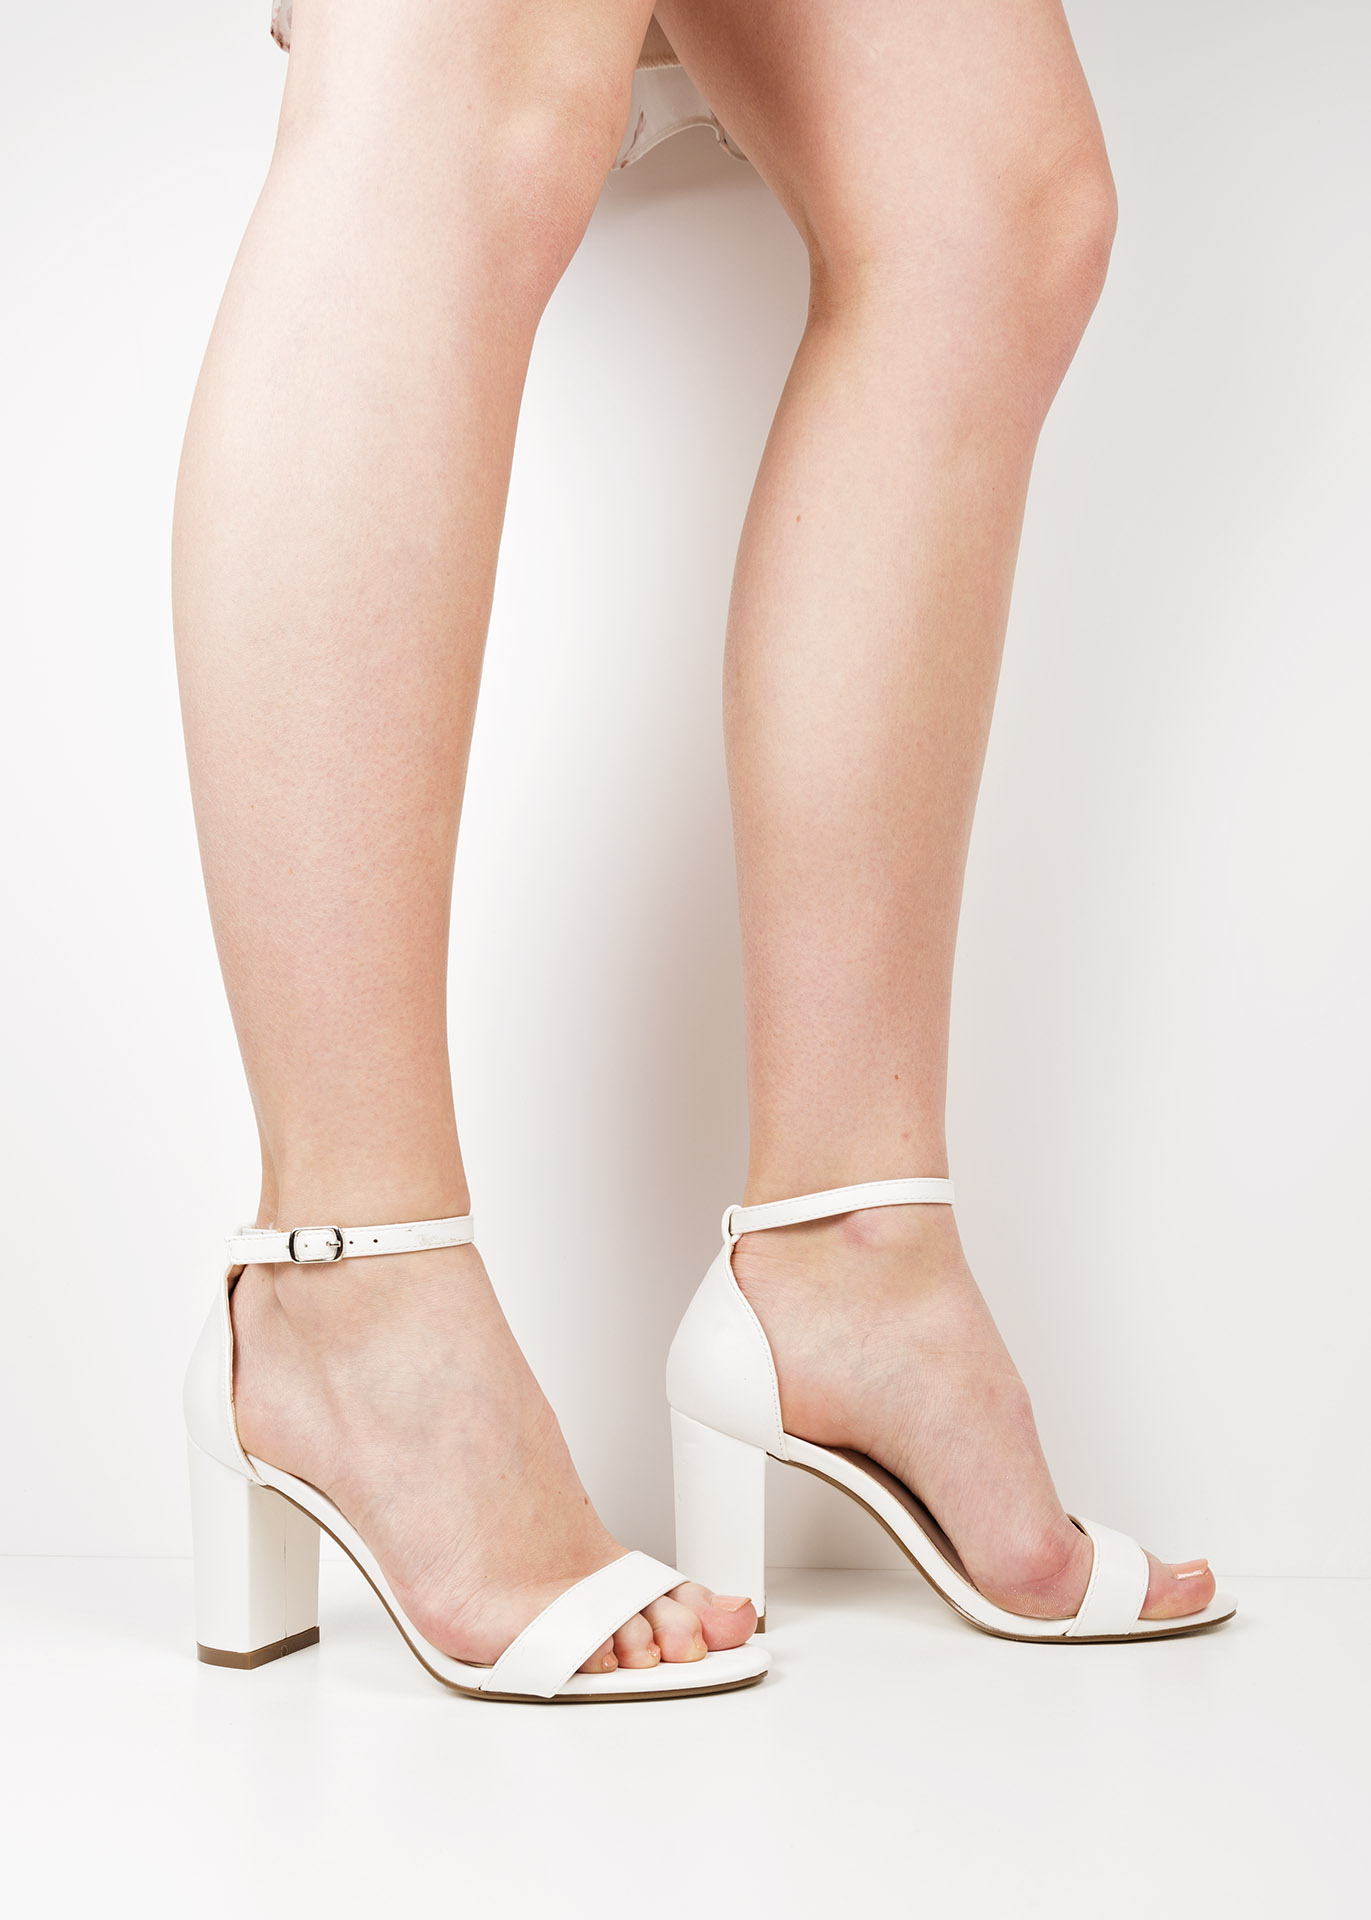 c146806dec P63981 White faux leather block heel sandals